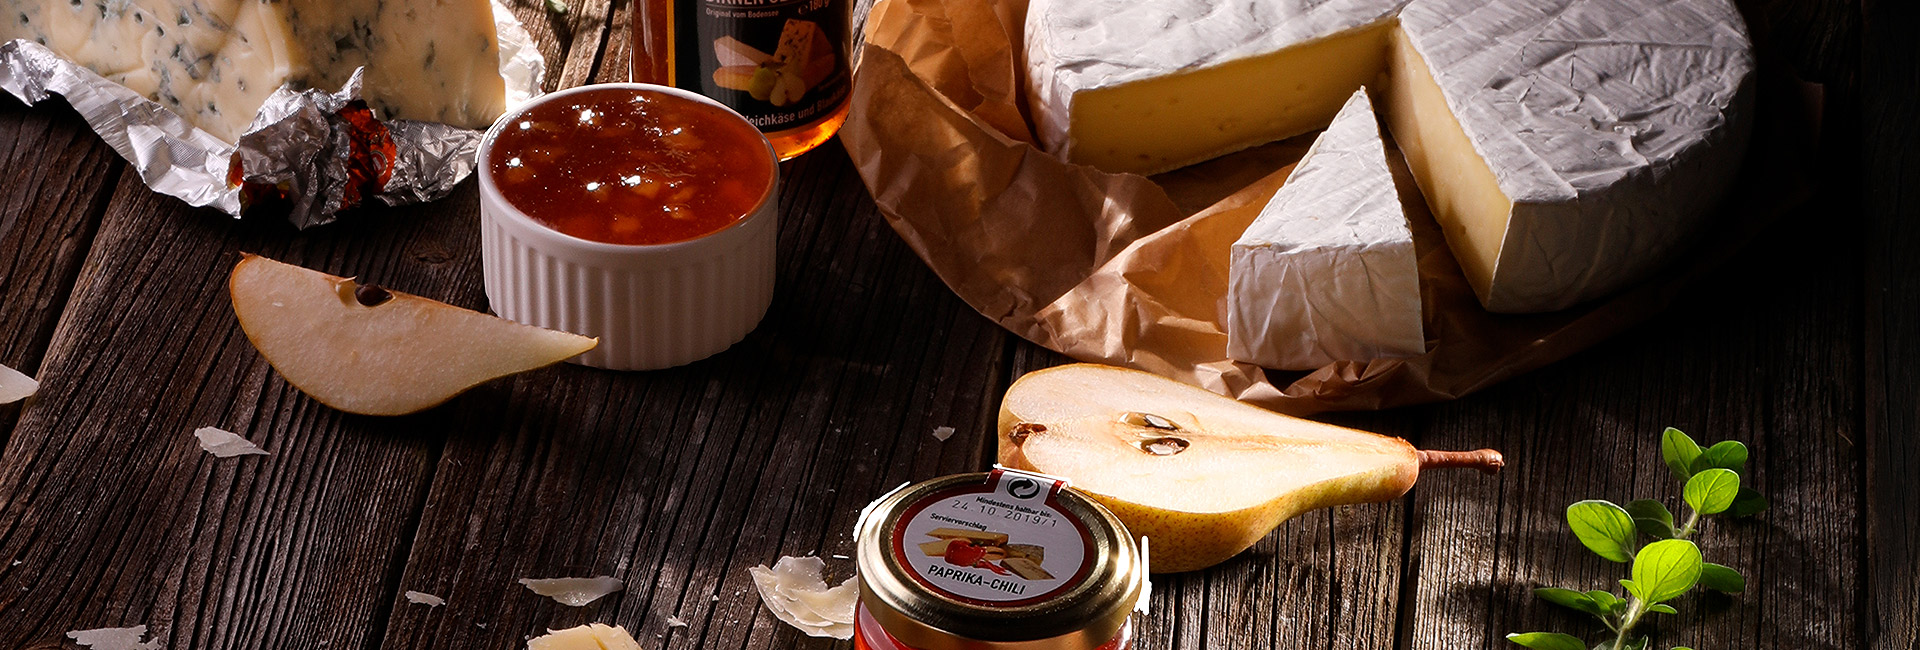 We took shots of, stylized and,of course,constantly took bites of cheeses with tasty sauces for Kaufland